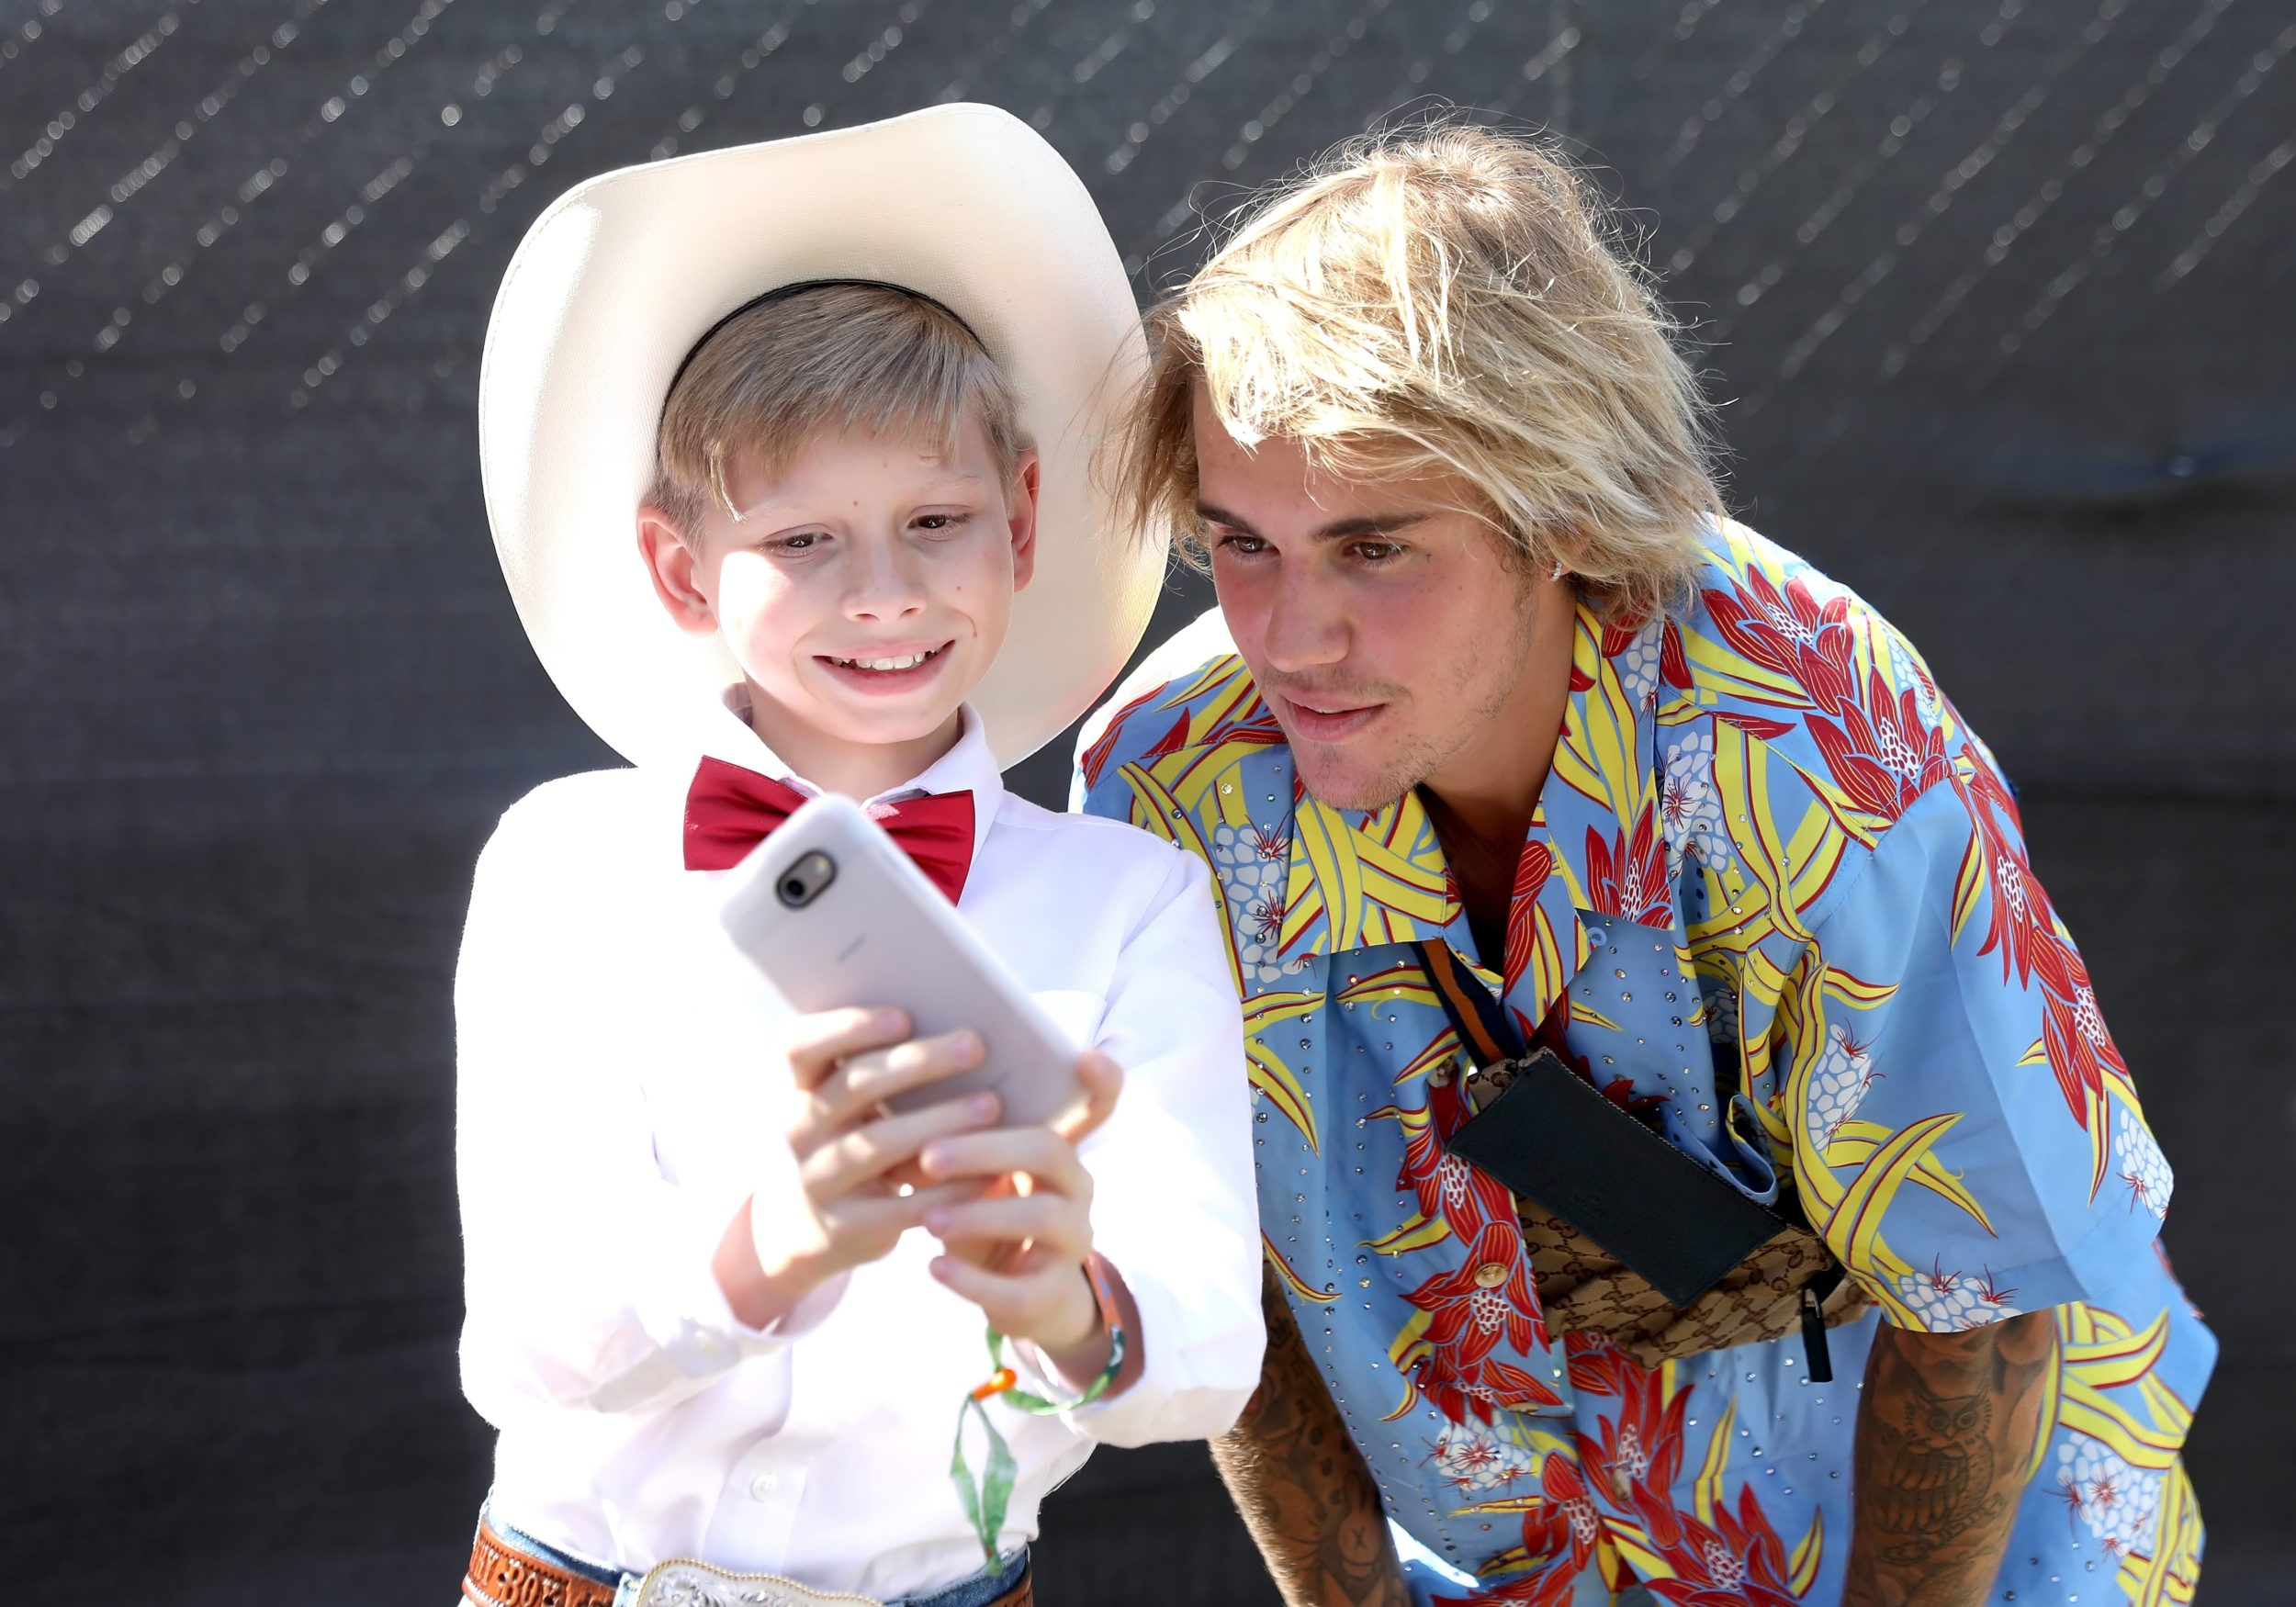 Justin Bieber adorably geeked out over the Walmart yodeling boy at Coachella, and there's video to prove it